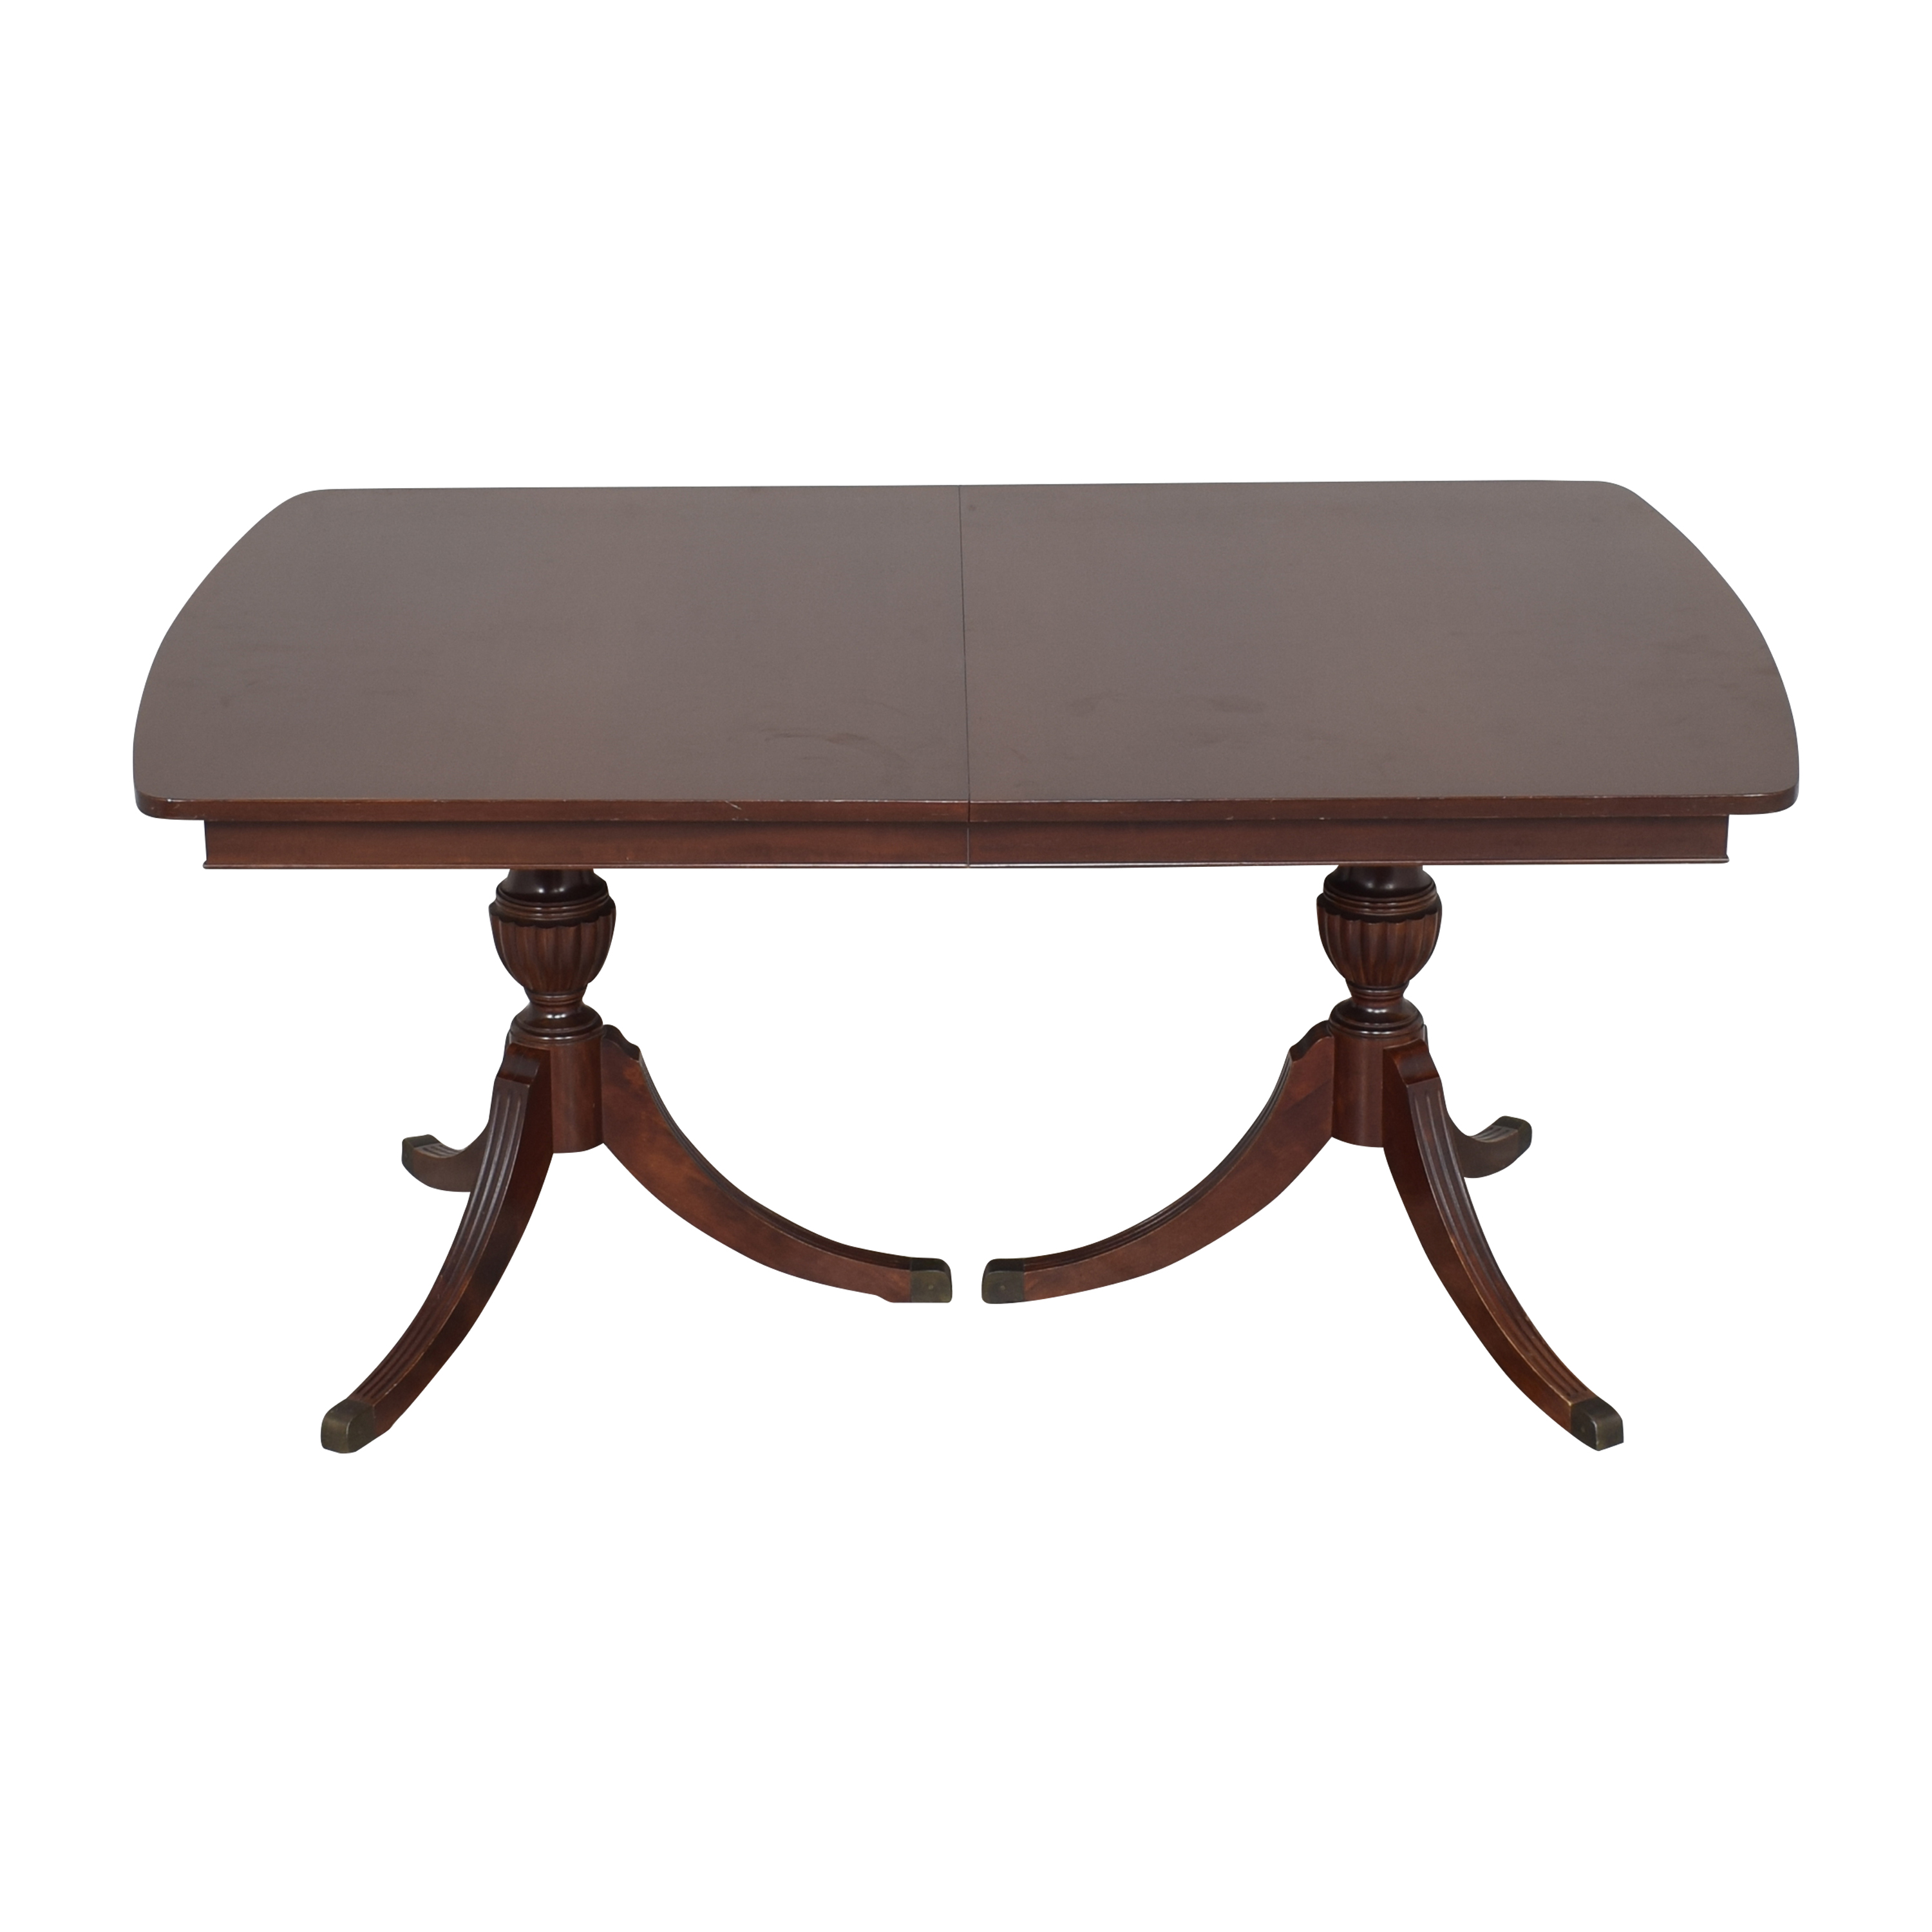 RWAY RWAY Double Pedestal Dining Table